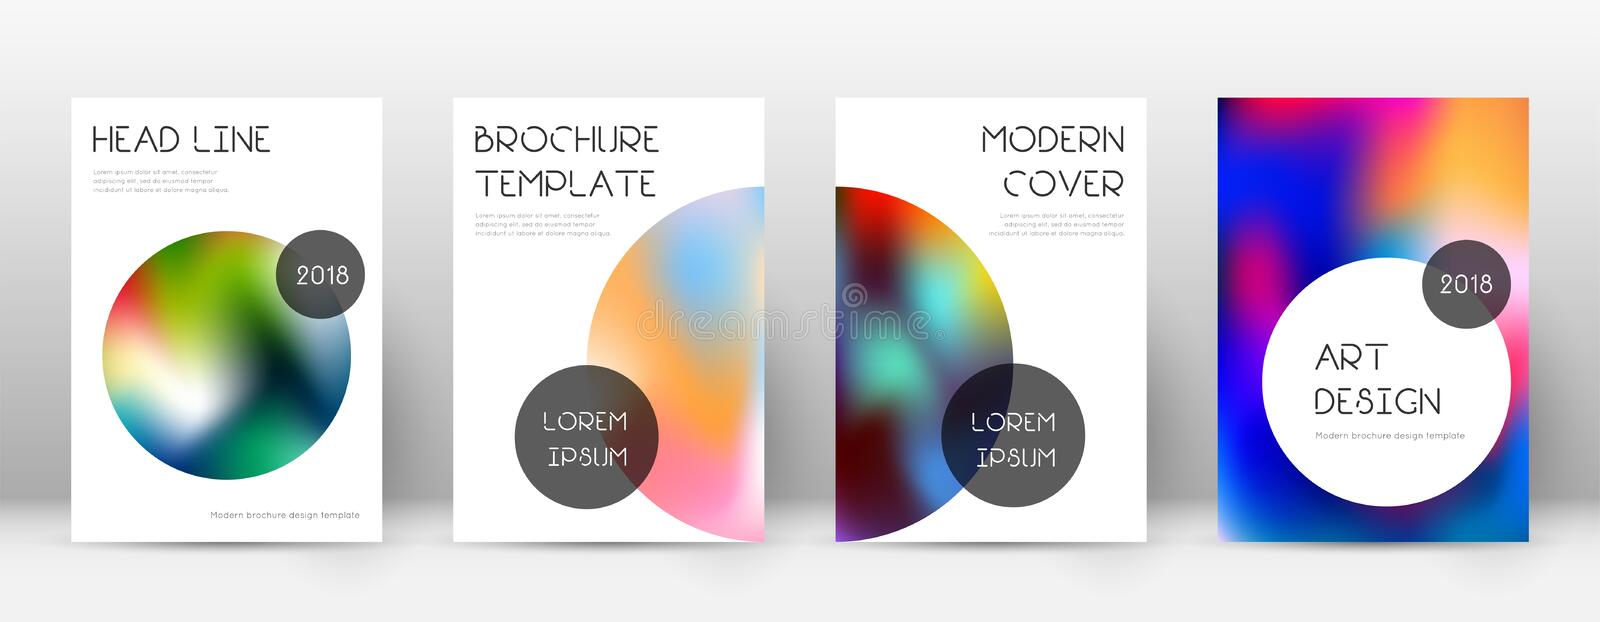 Flyer layout. Trendy powerful template for Brochure, Annual Report, Magazine, Poster, Corporate Presentation, Portfolio, Flyer. Beauteous colorful cover page royalty free illustration